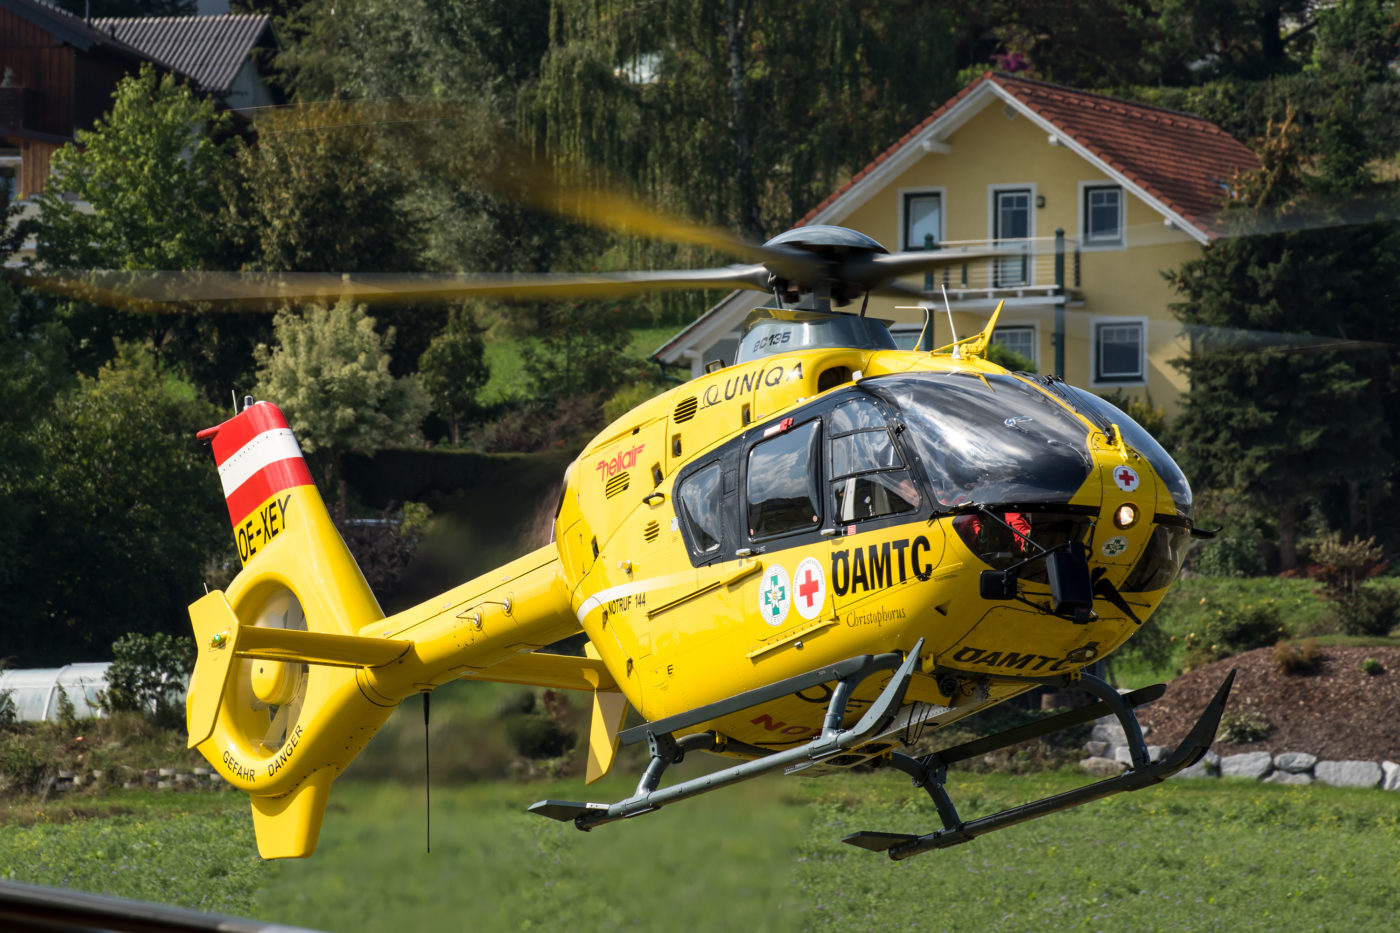 Austrian air rescue operator OAMTC had an Airbus EC135 T2+ at HeliDays, and demonstrated its day-to-day services with the aircraft. Florian Szczepanek and Alexander Schwarz Photo